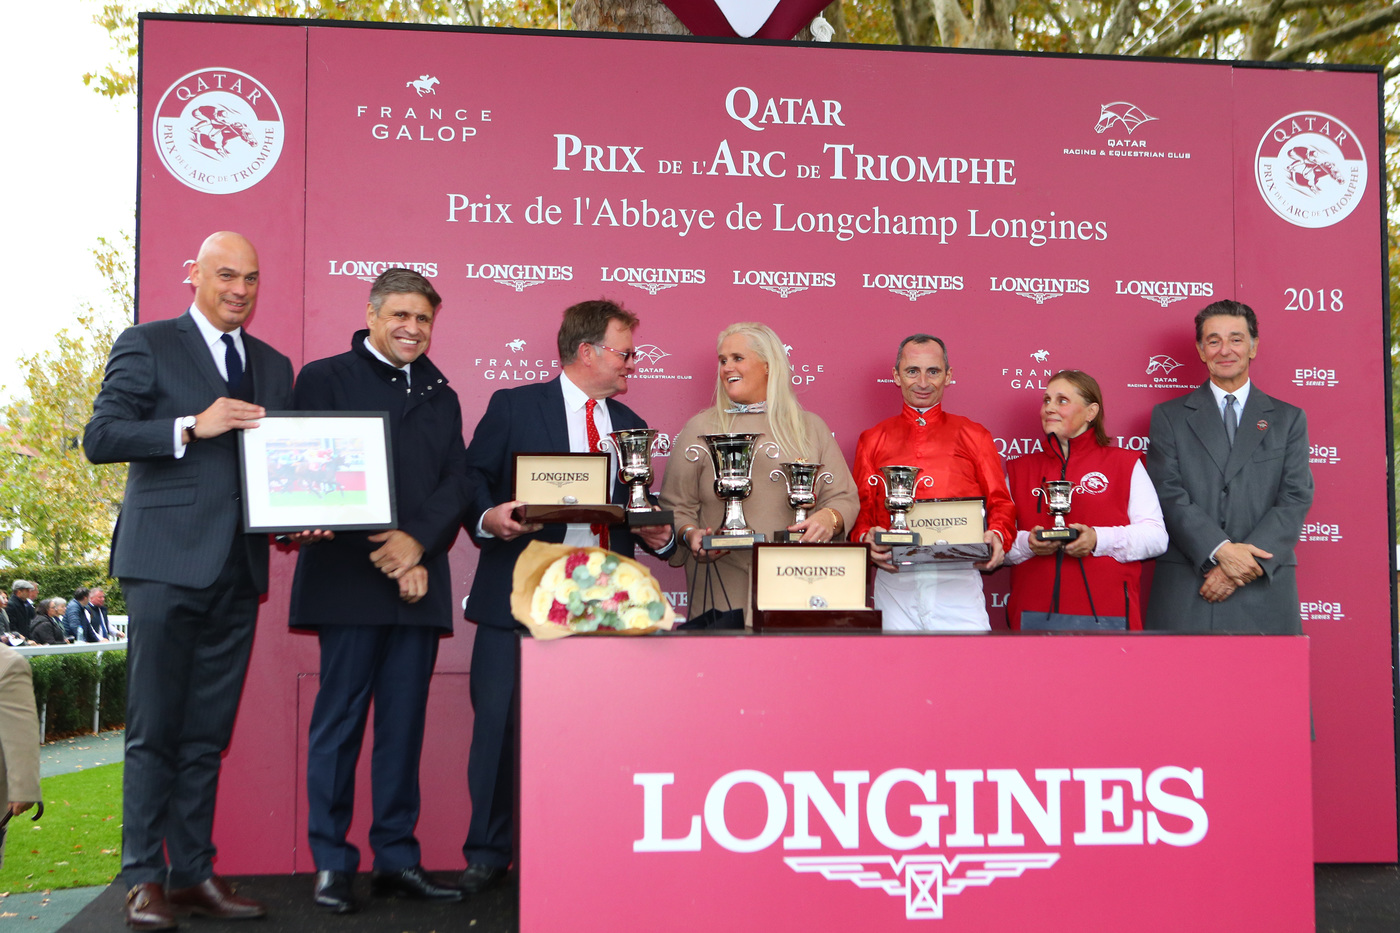 Longines Flat Racing Event: Longines times the Qatar Prix de l'Arc de Triomphe  back at ParisLongchamp 9